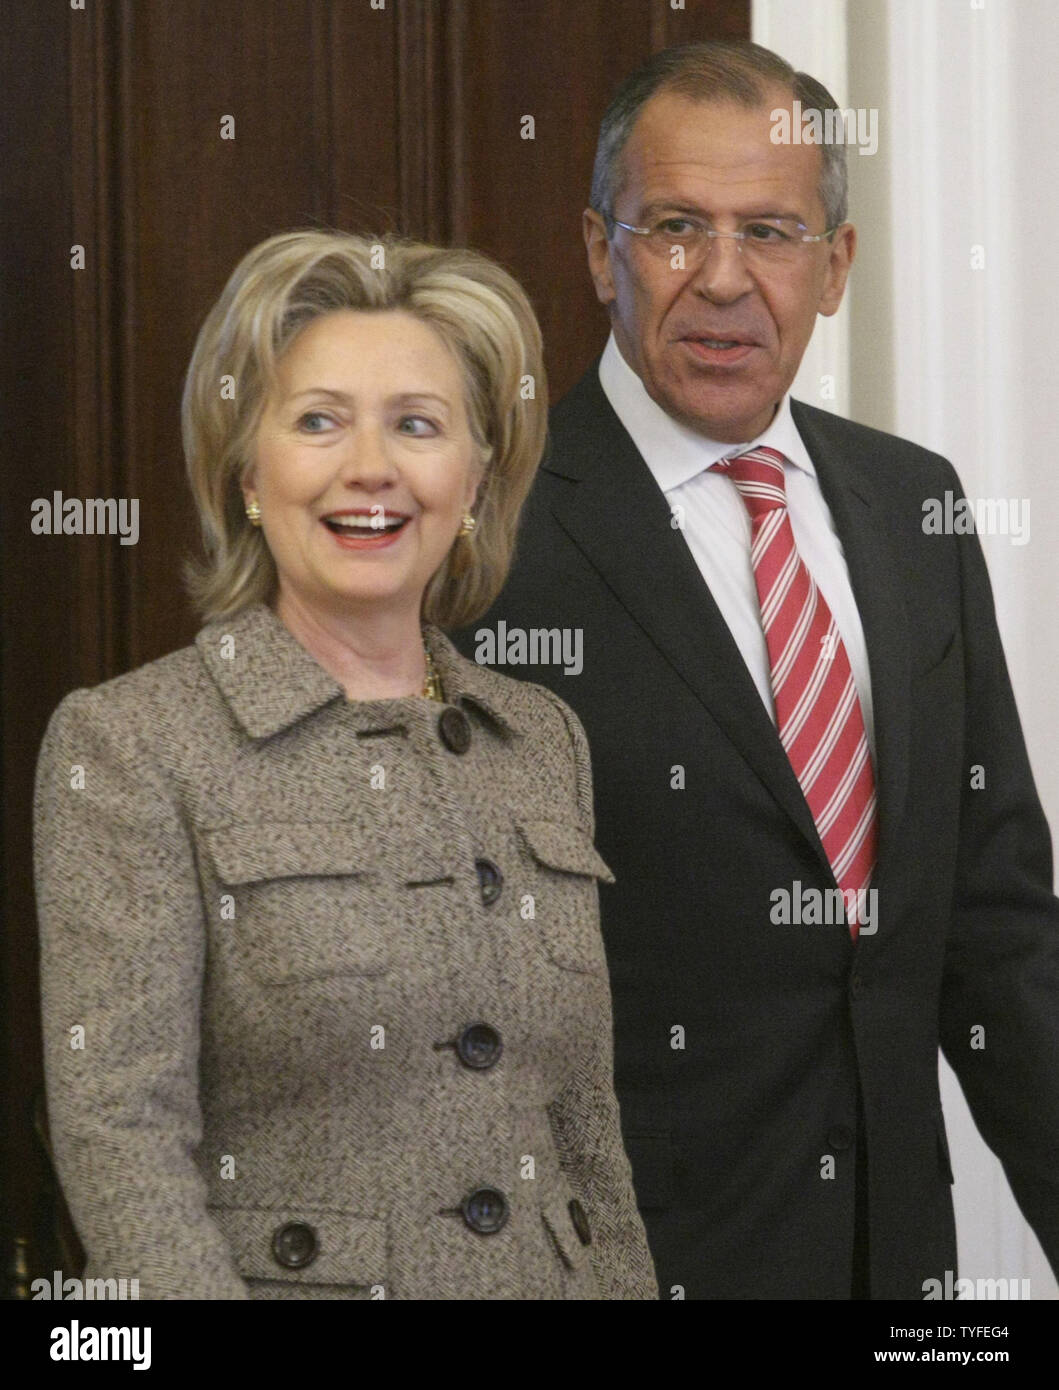 U.S. Secretary of State Hillary Clinton (L)  and her Russian counterpart Sergei Lavrov walk before their meeting in Moscow on March 18, 2010. UPI/Alex Natin - Stock Image